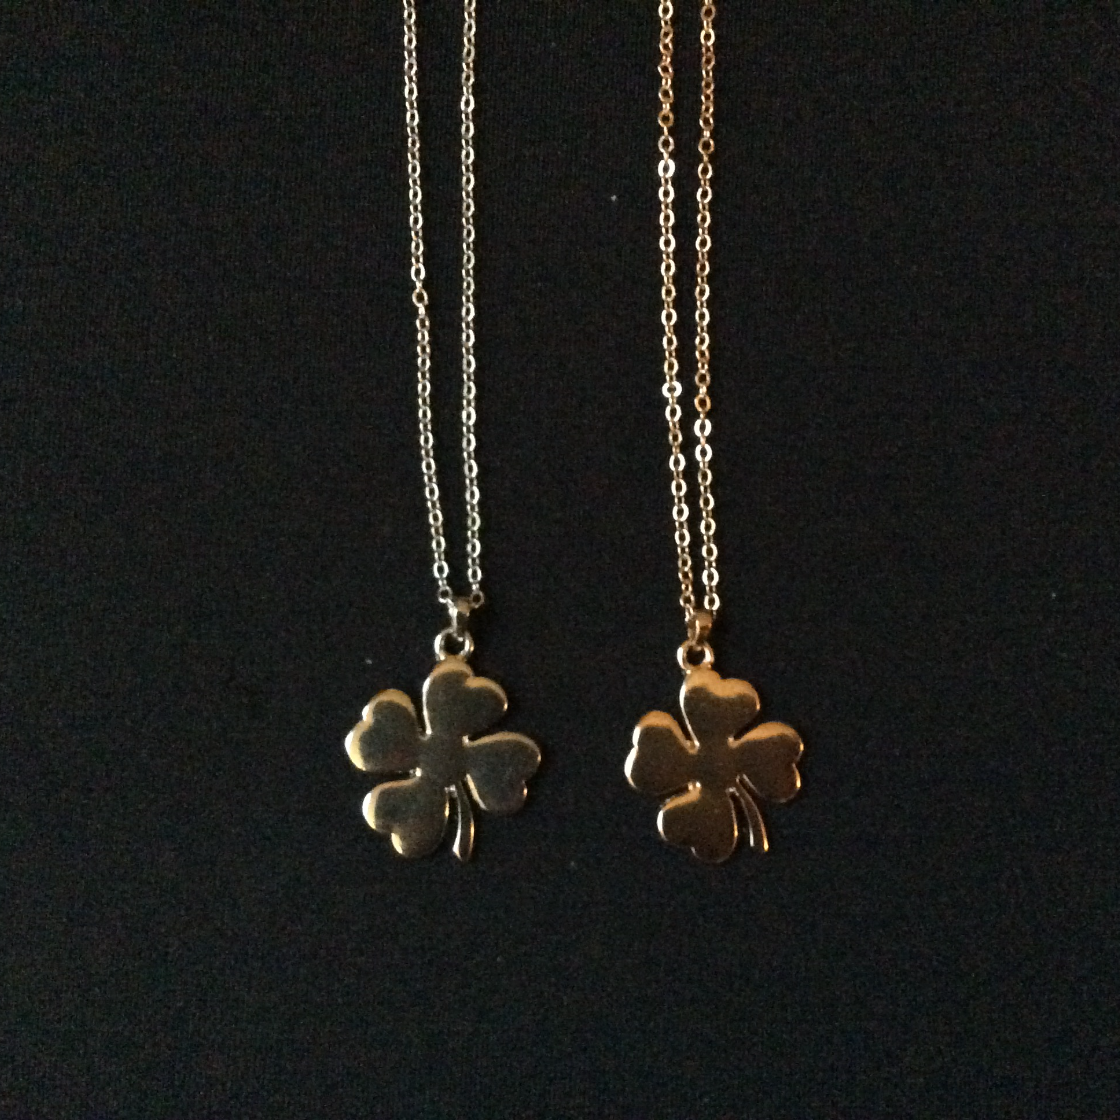 Silver and Gold Shammrock Necklaces